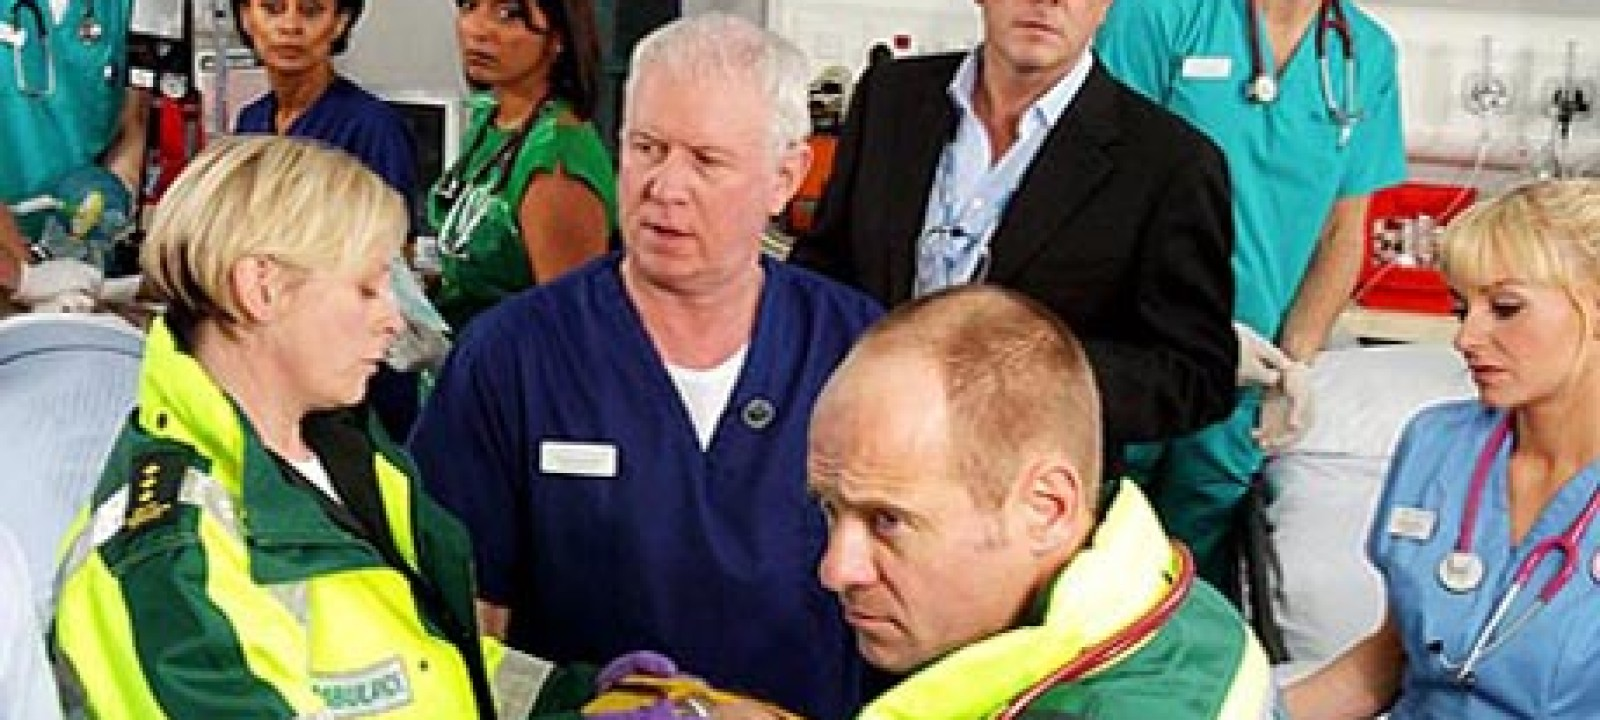 what are brits watching casualty anglophenia bbc america